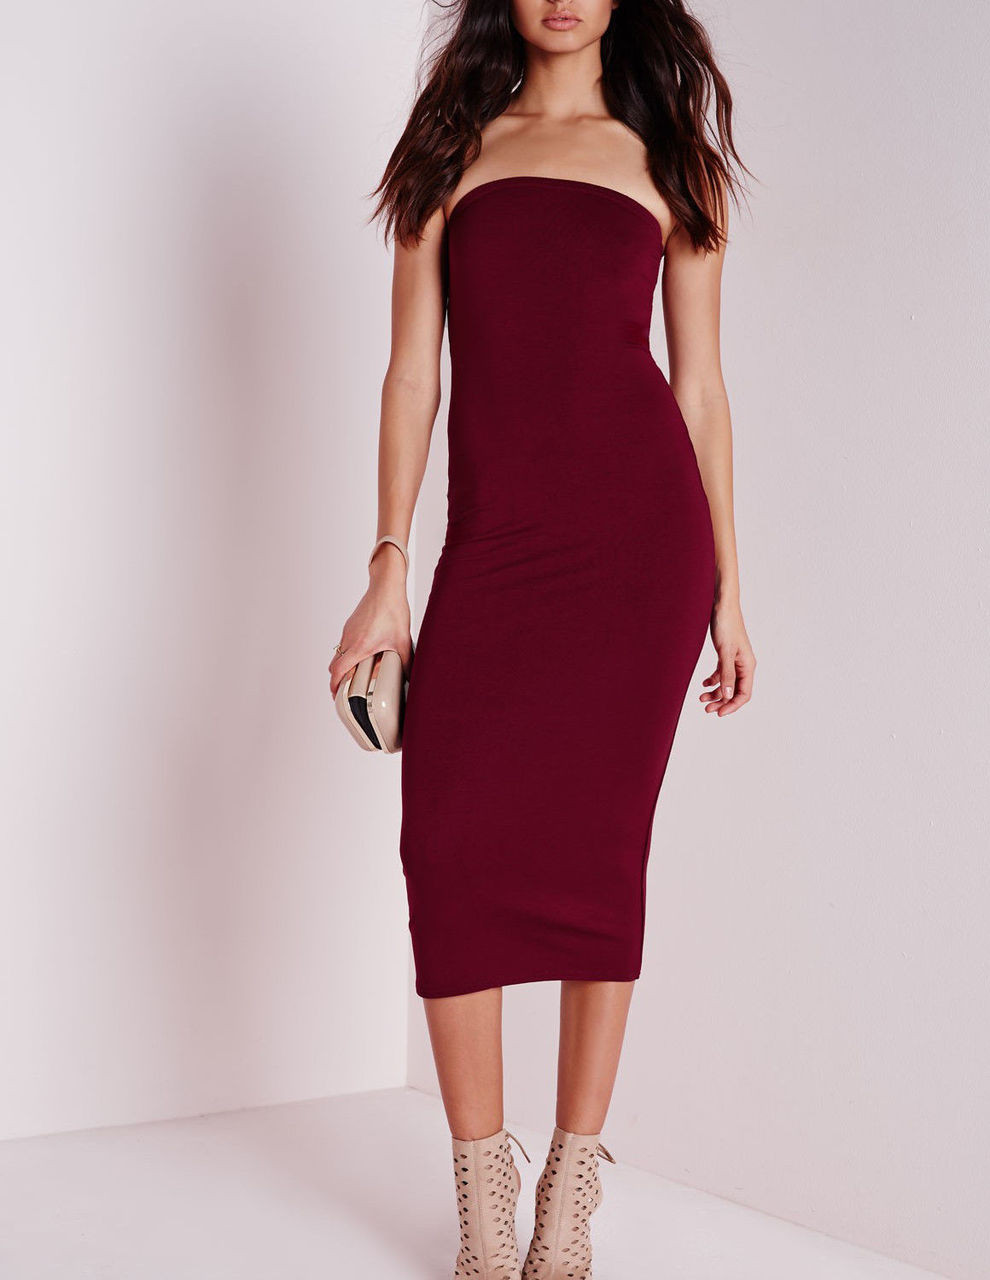 ff26f0cec3b6 Burgundy Tube Midi Bodycon Dress - BZ Fashions